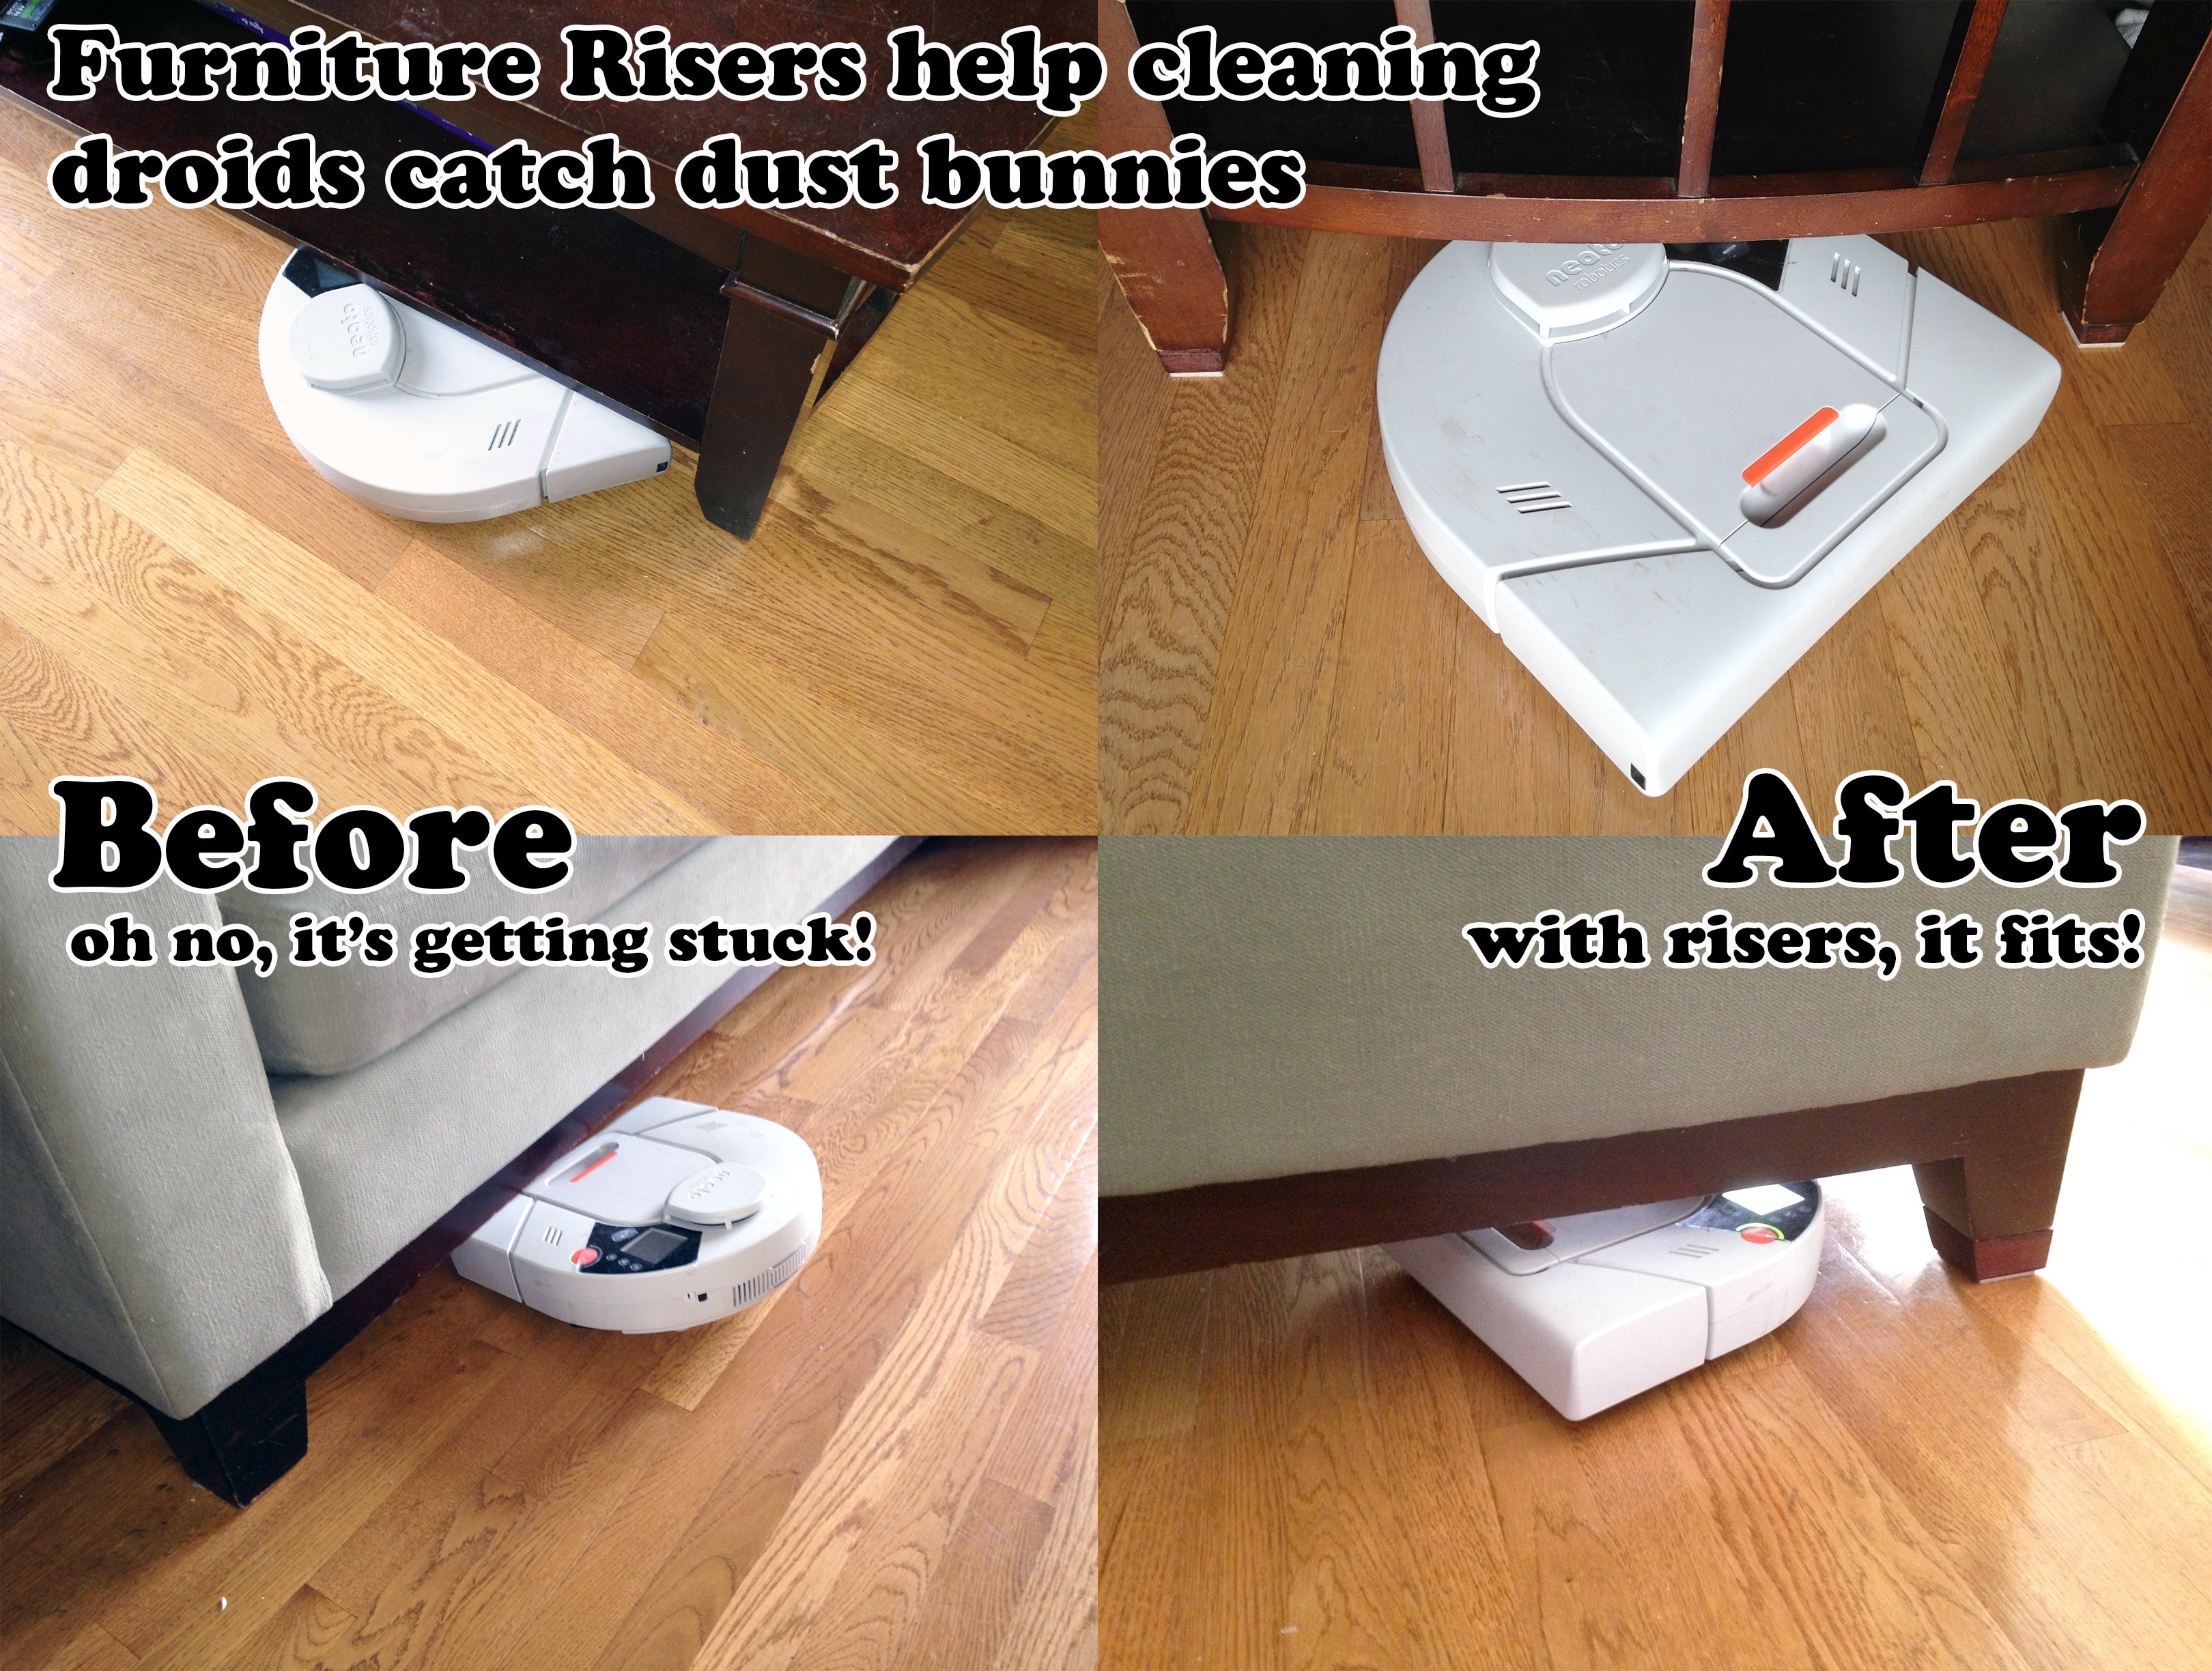 Furniture Risers Help Cleaning Droids Catch More Dust Bunnies Under The Sofa 8 Steps With Pictures Instructables